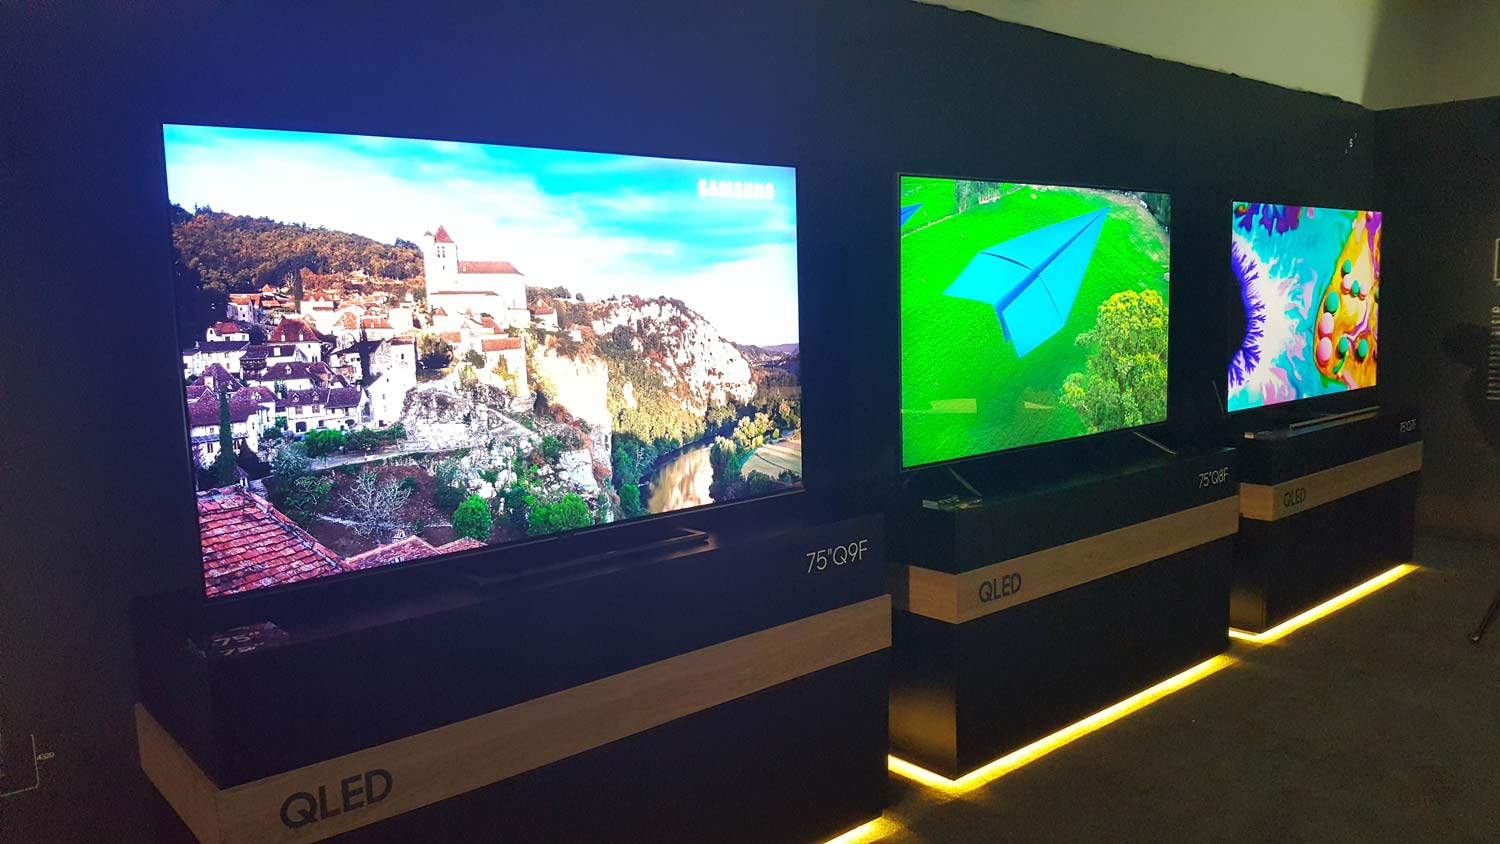 Samsung's 2018 QLED TVs Get Smarts, Sleek Designs | Tom's Guide